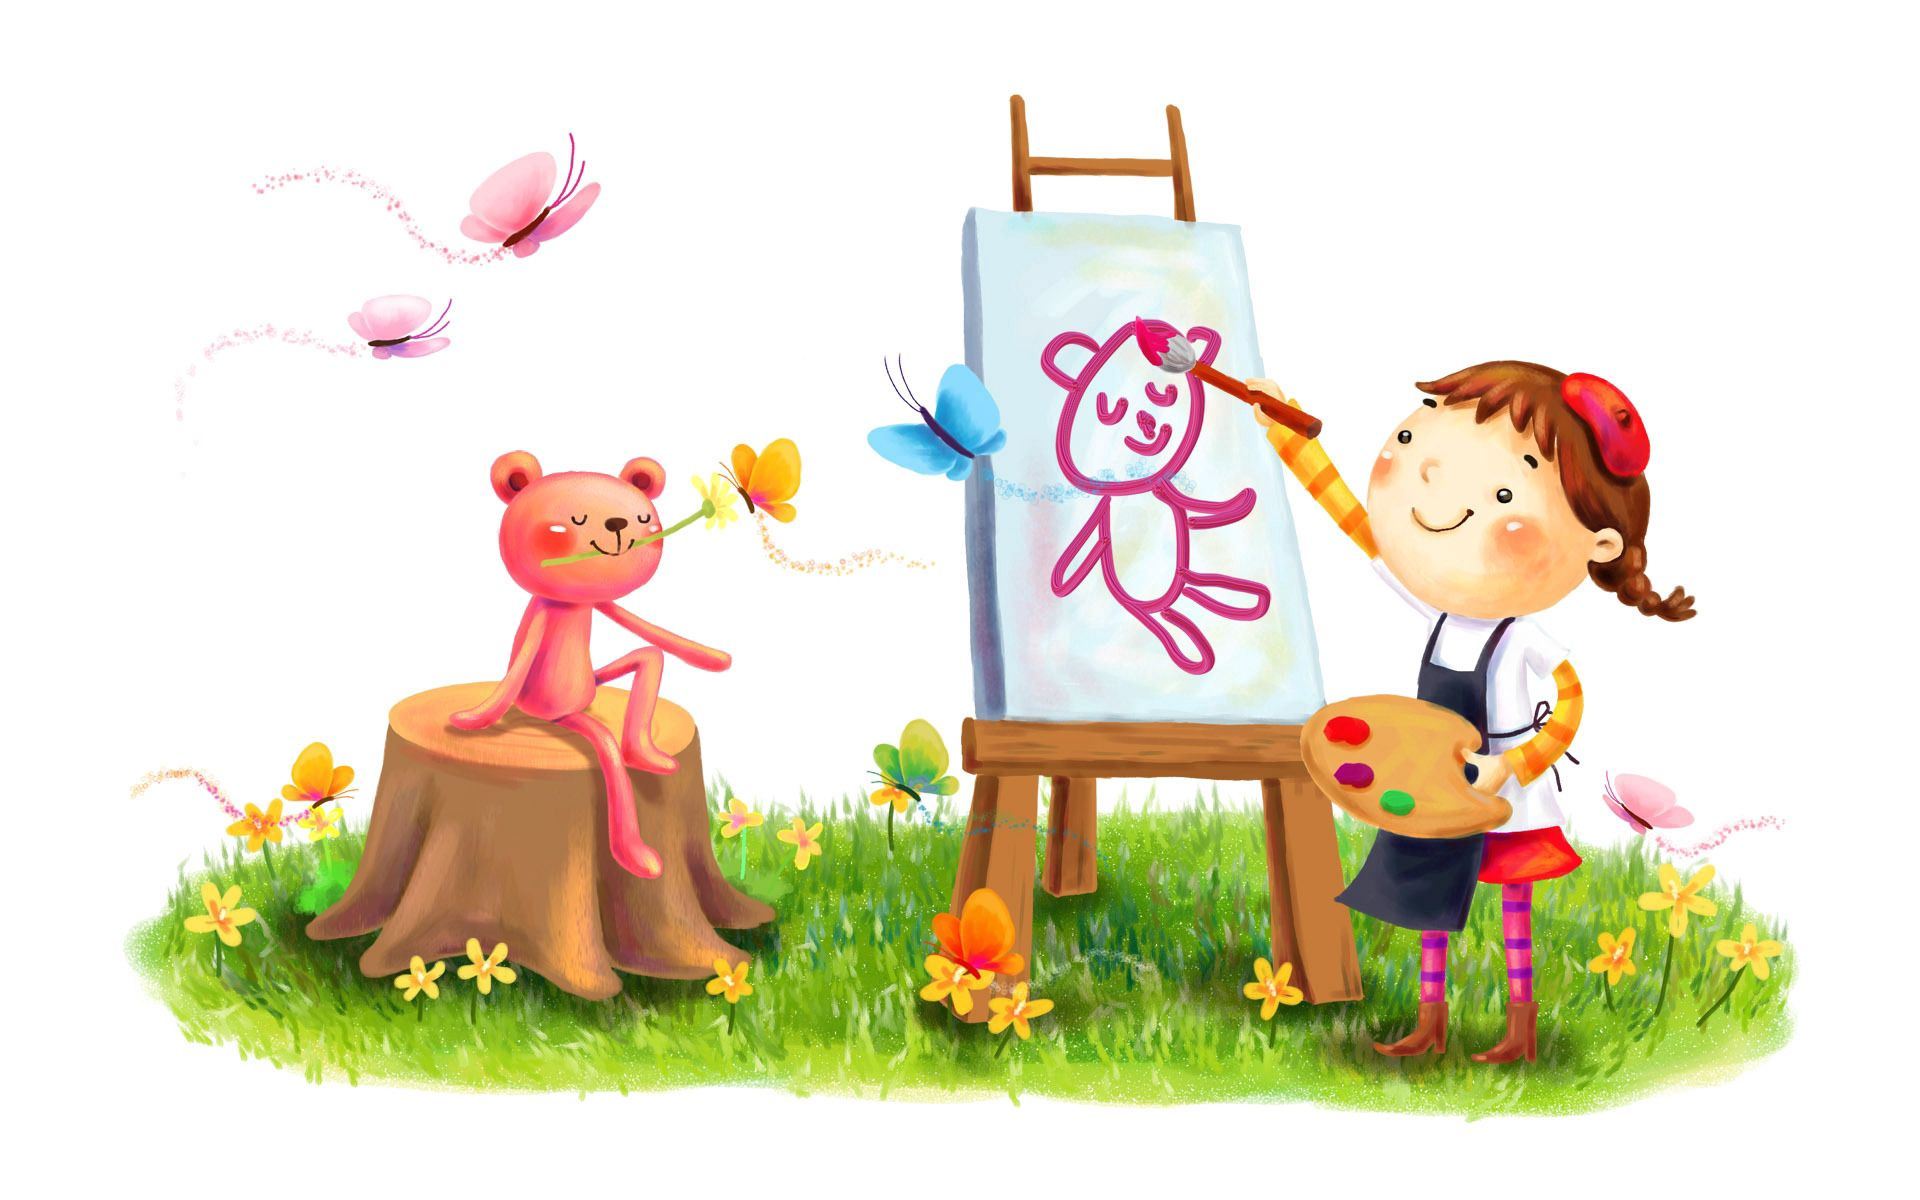 101633 download wallpaper Miscellanea, Miscellaneous, Picture, Drawing, Girl, Animal, Beast, Smile, Painting, Paints, Brush, Butterflies, Lawn, Summer, Flowers screensavers and pictures for free